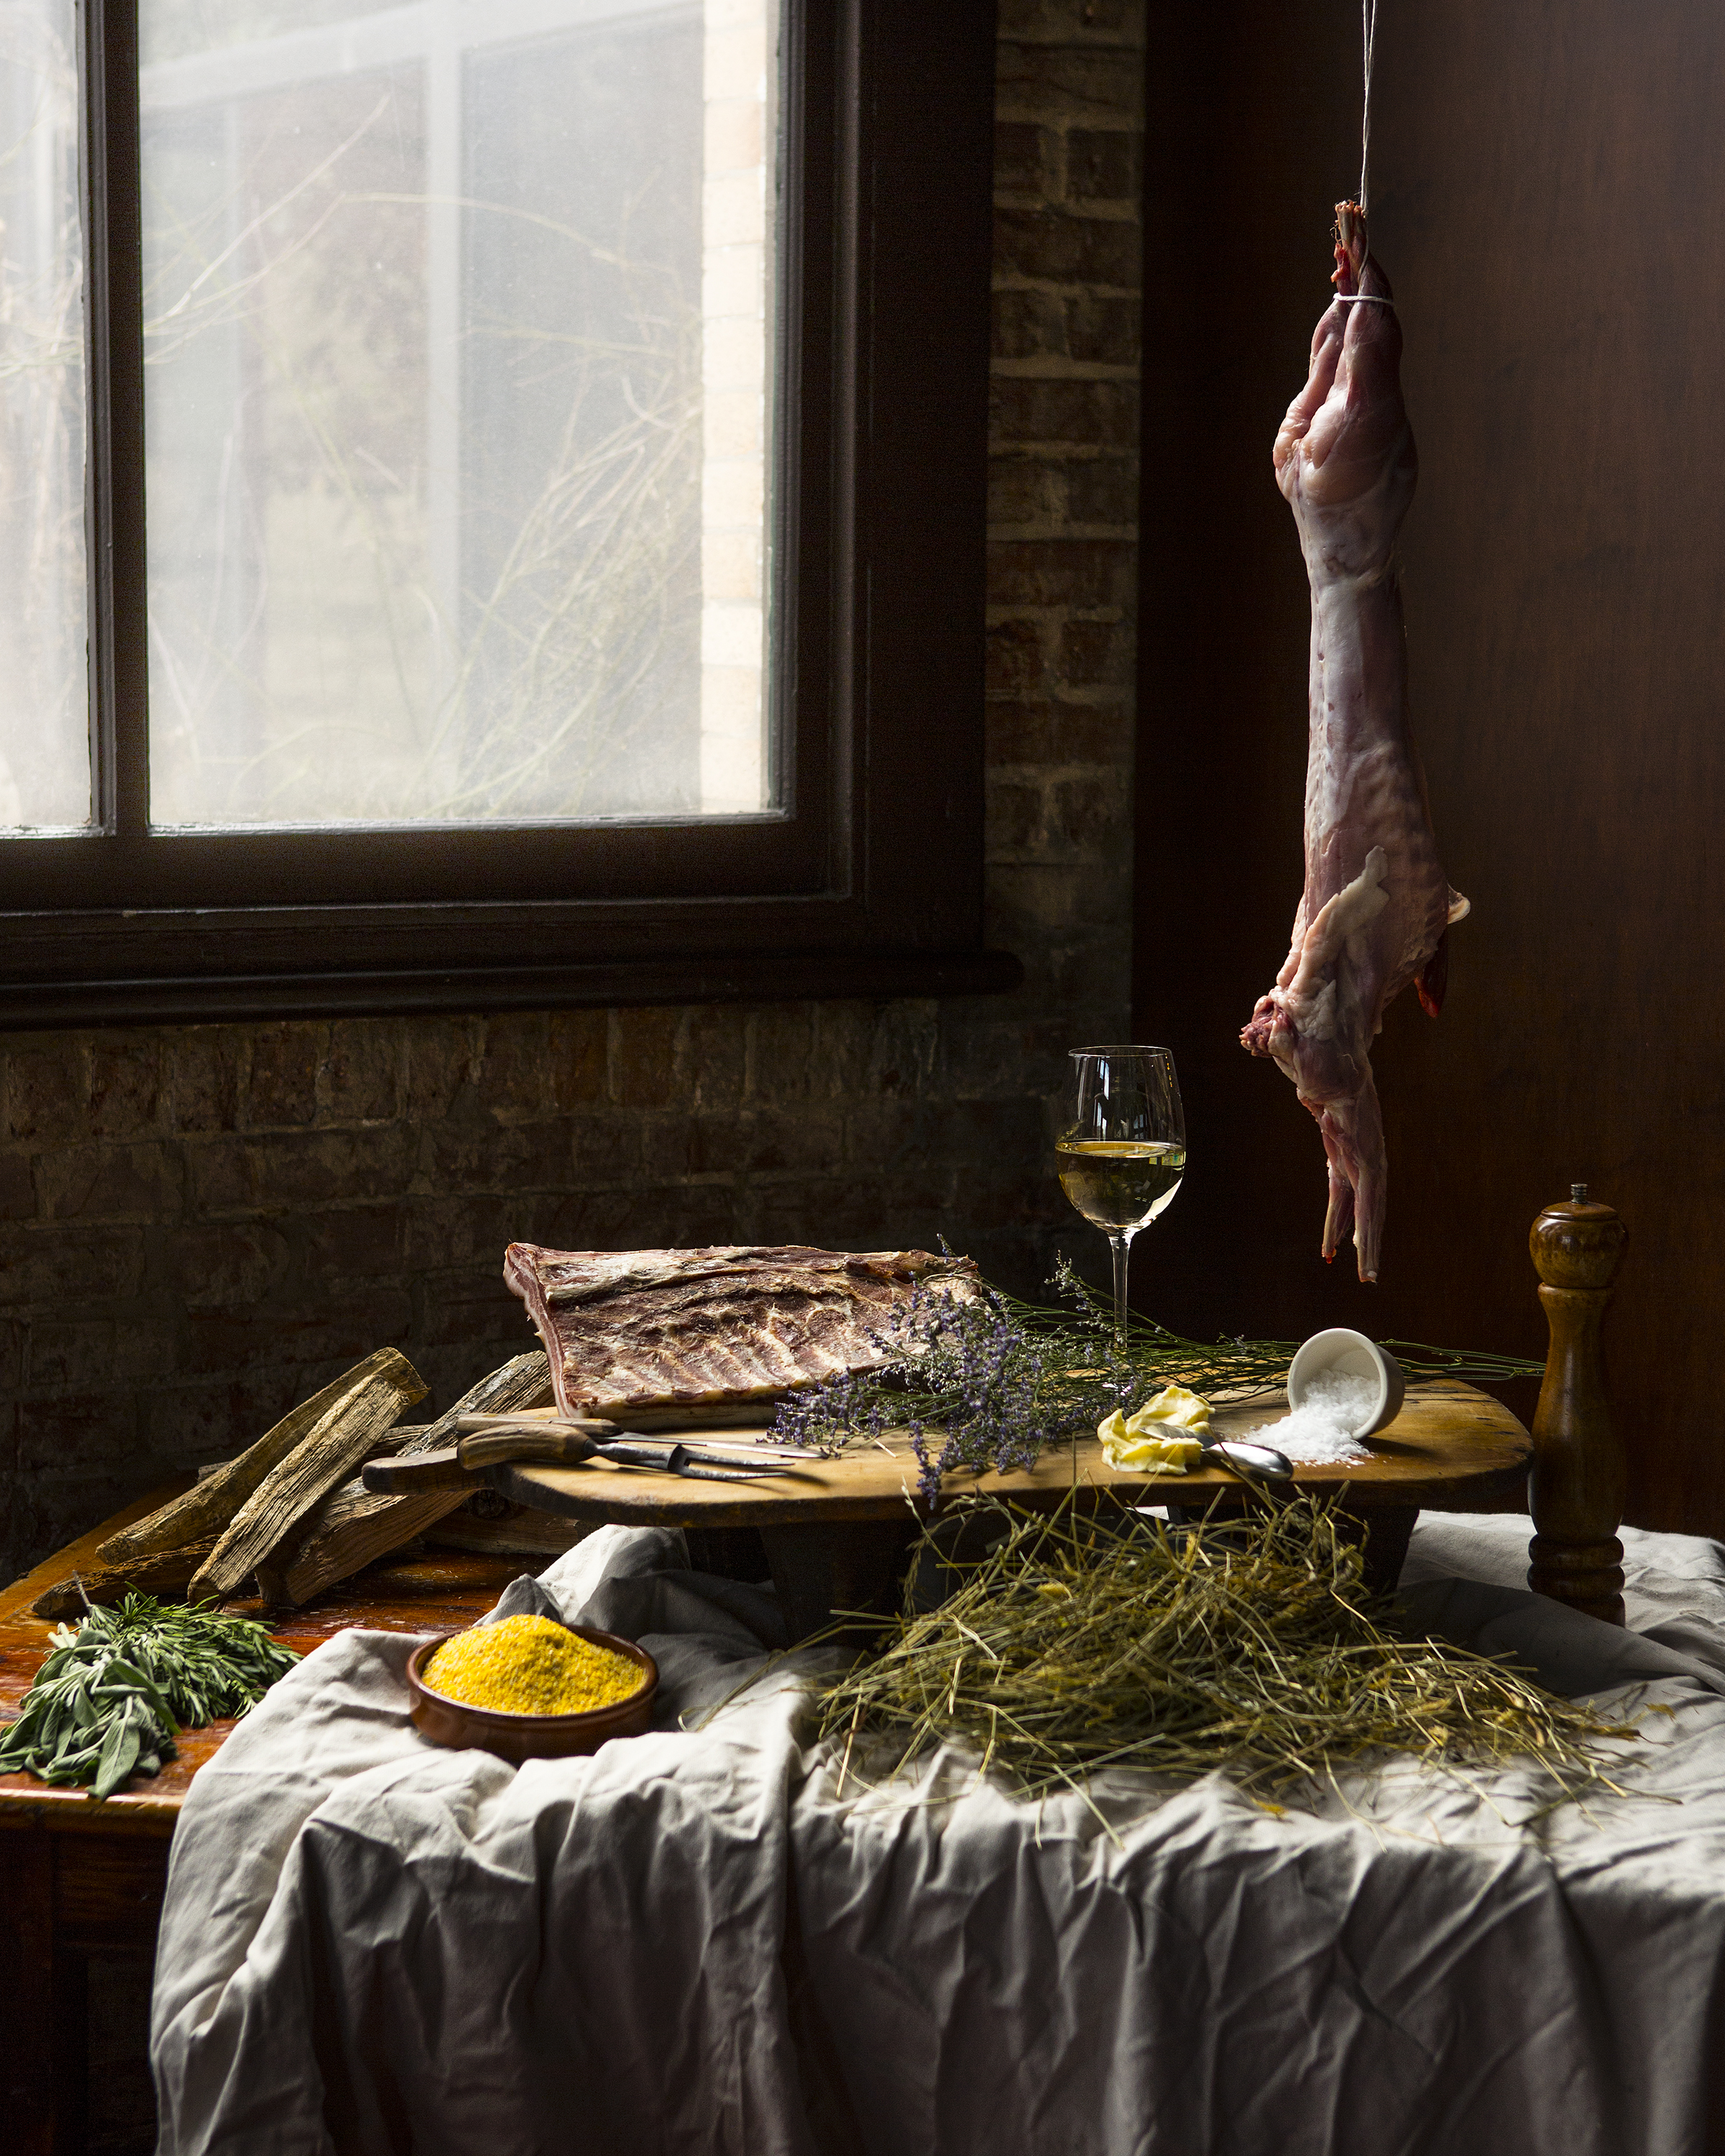 Osteria still life created by  Mike Persico .